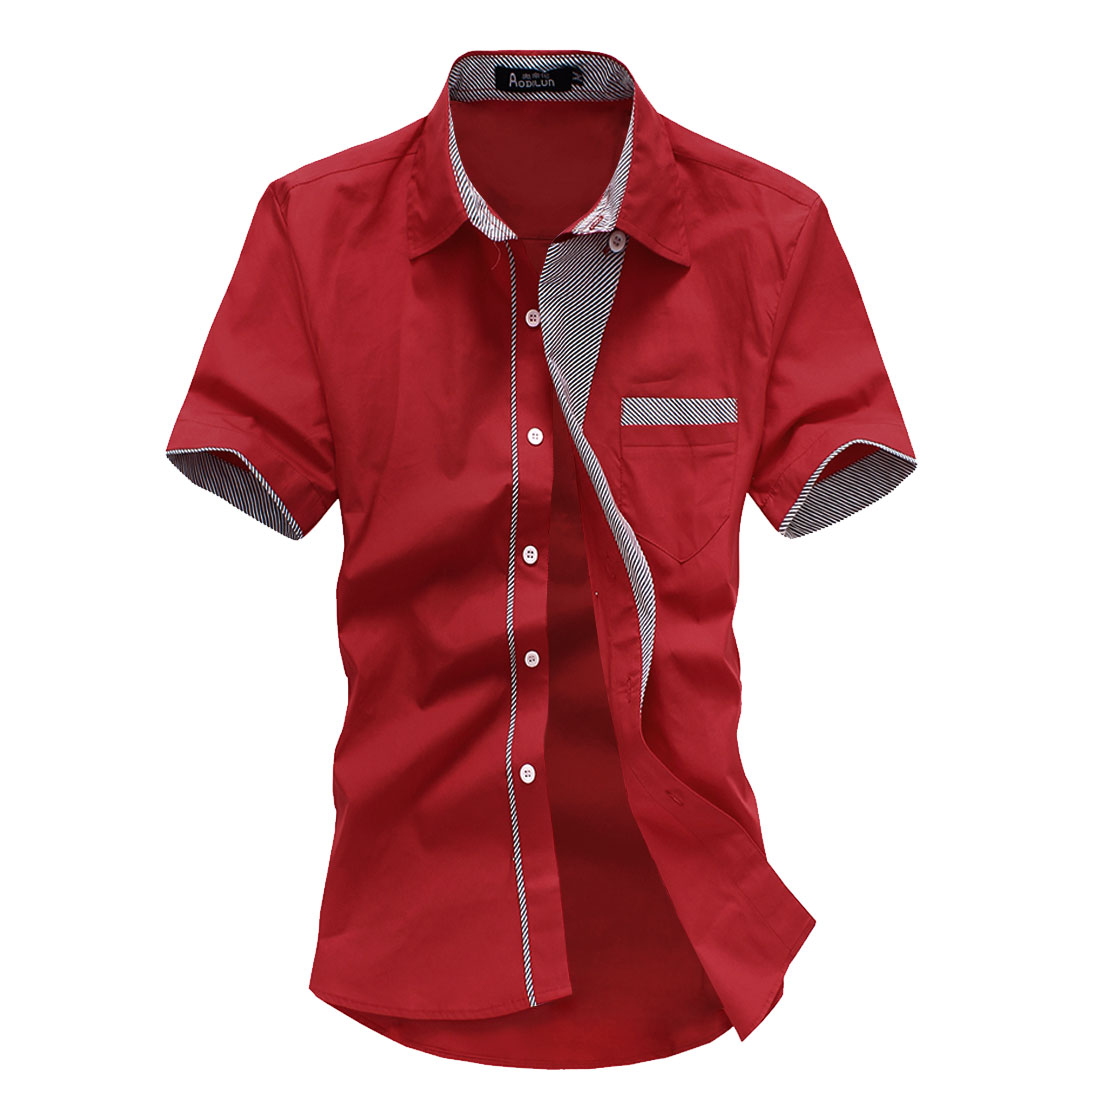 Men Point Collar Button Up Short Sleeve Summer Wearing Shirt Red M